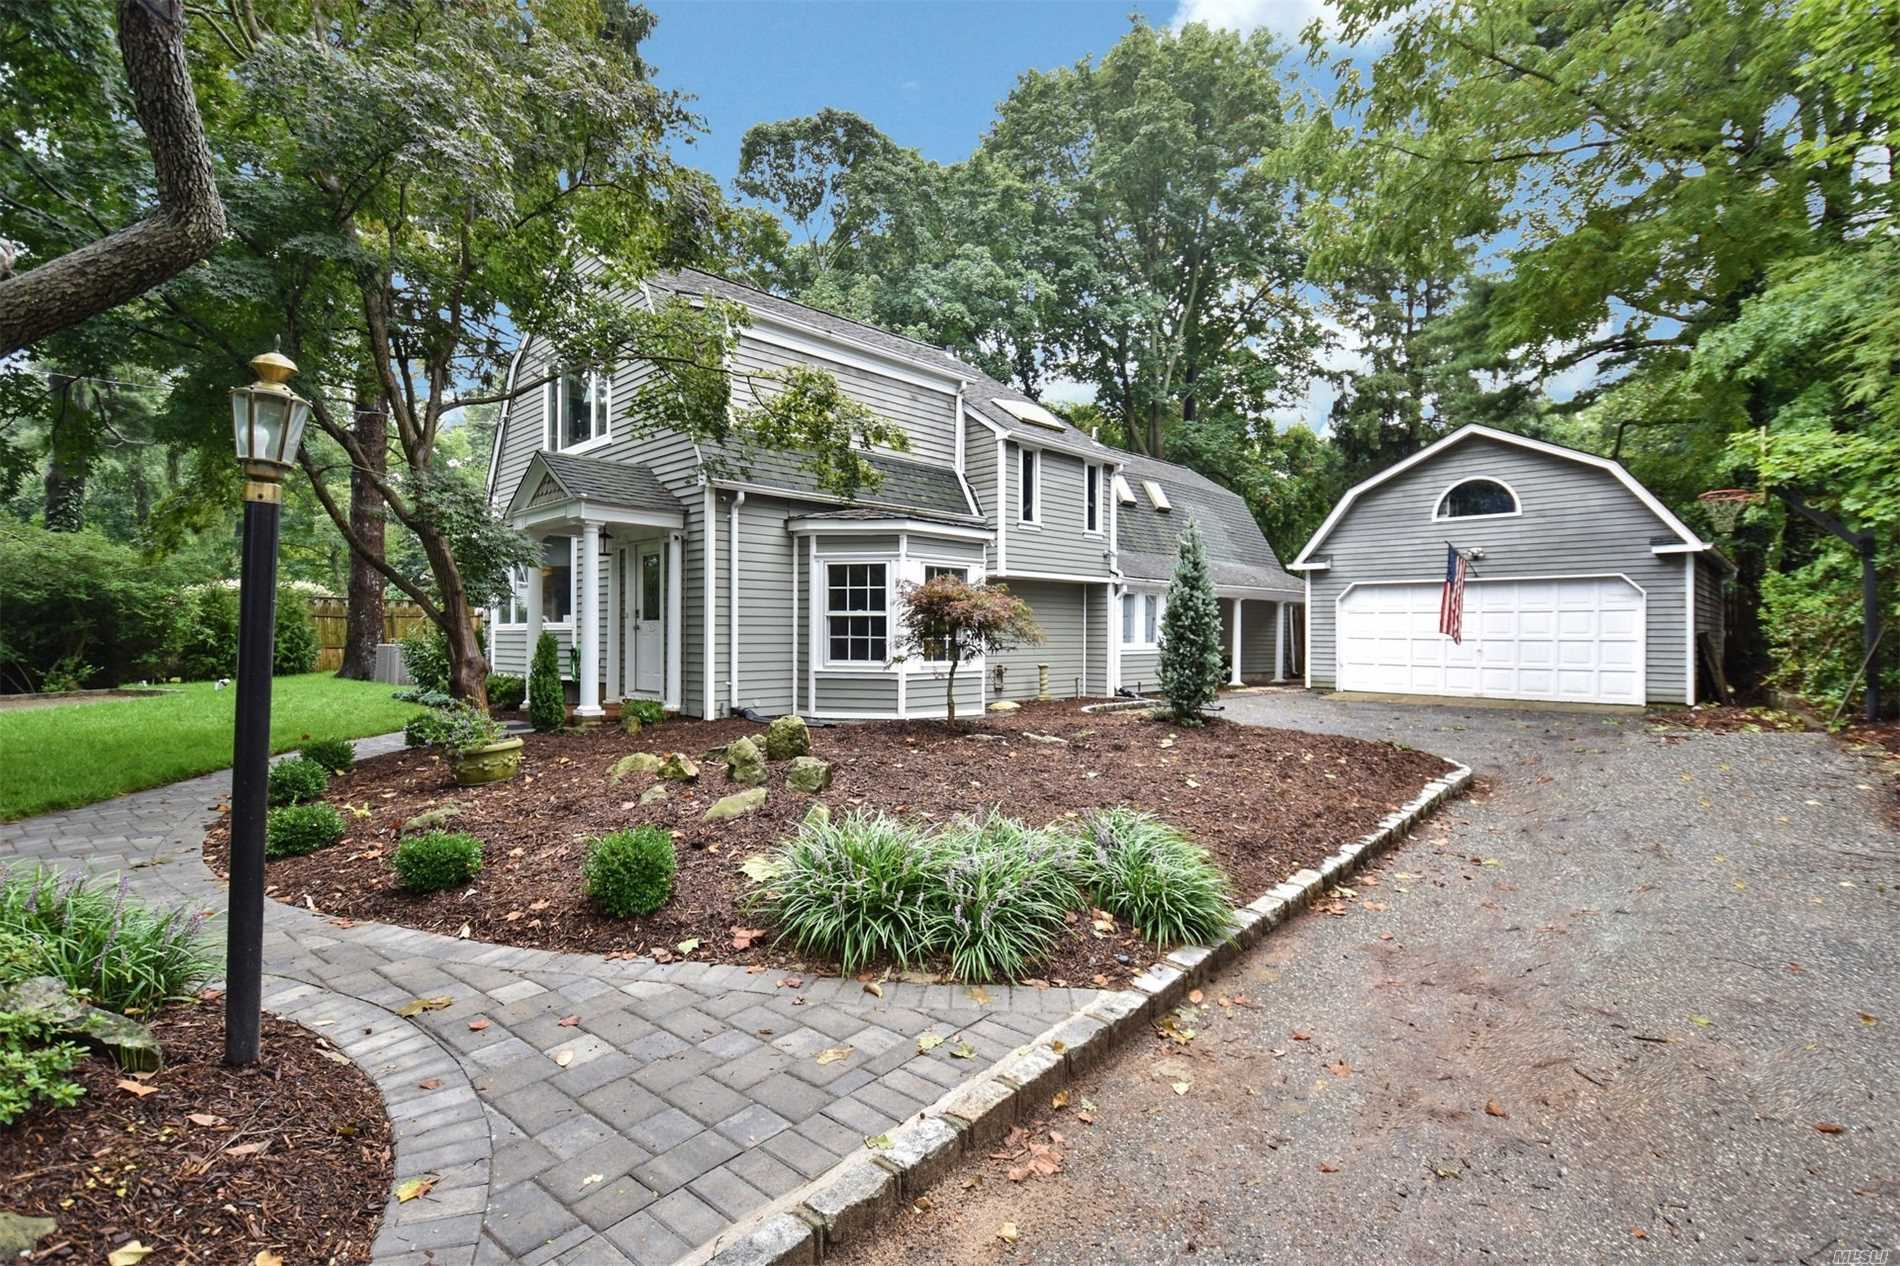 Fabulous 3/4 Bedroom Colonial Is Situated In A Private 1/2 Acre Oasis. This Home Has Been Recently Renovated With A Chefs Kitchen That Includes Top Of The Line Thermador Stainless Steel Appliances Includes 6 Burner Gas Stove Custom Cabinets, Farm Sink, Open Floor Plan To The Family Room. New Baths, Outdoors, Enjoy A Beautiful Landscape And Built In Pool. Just A Stroll To Huntington Village! Minutes From Csh Train And Parkways. Artist Studio